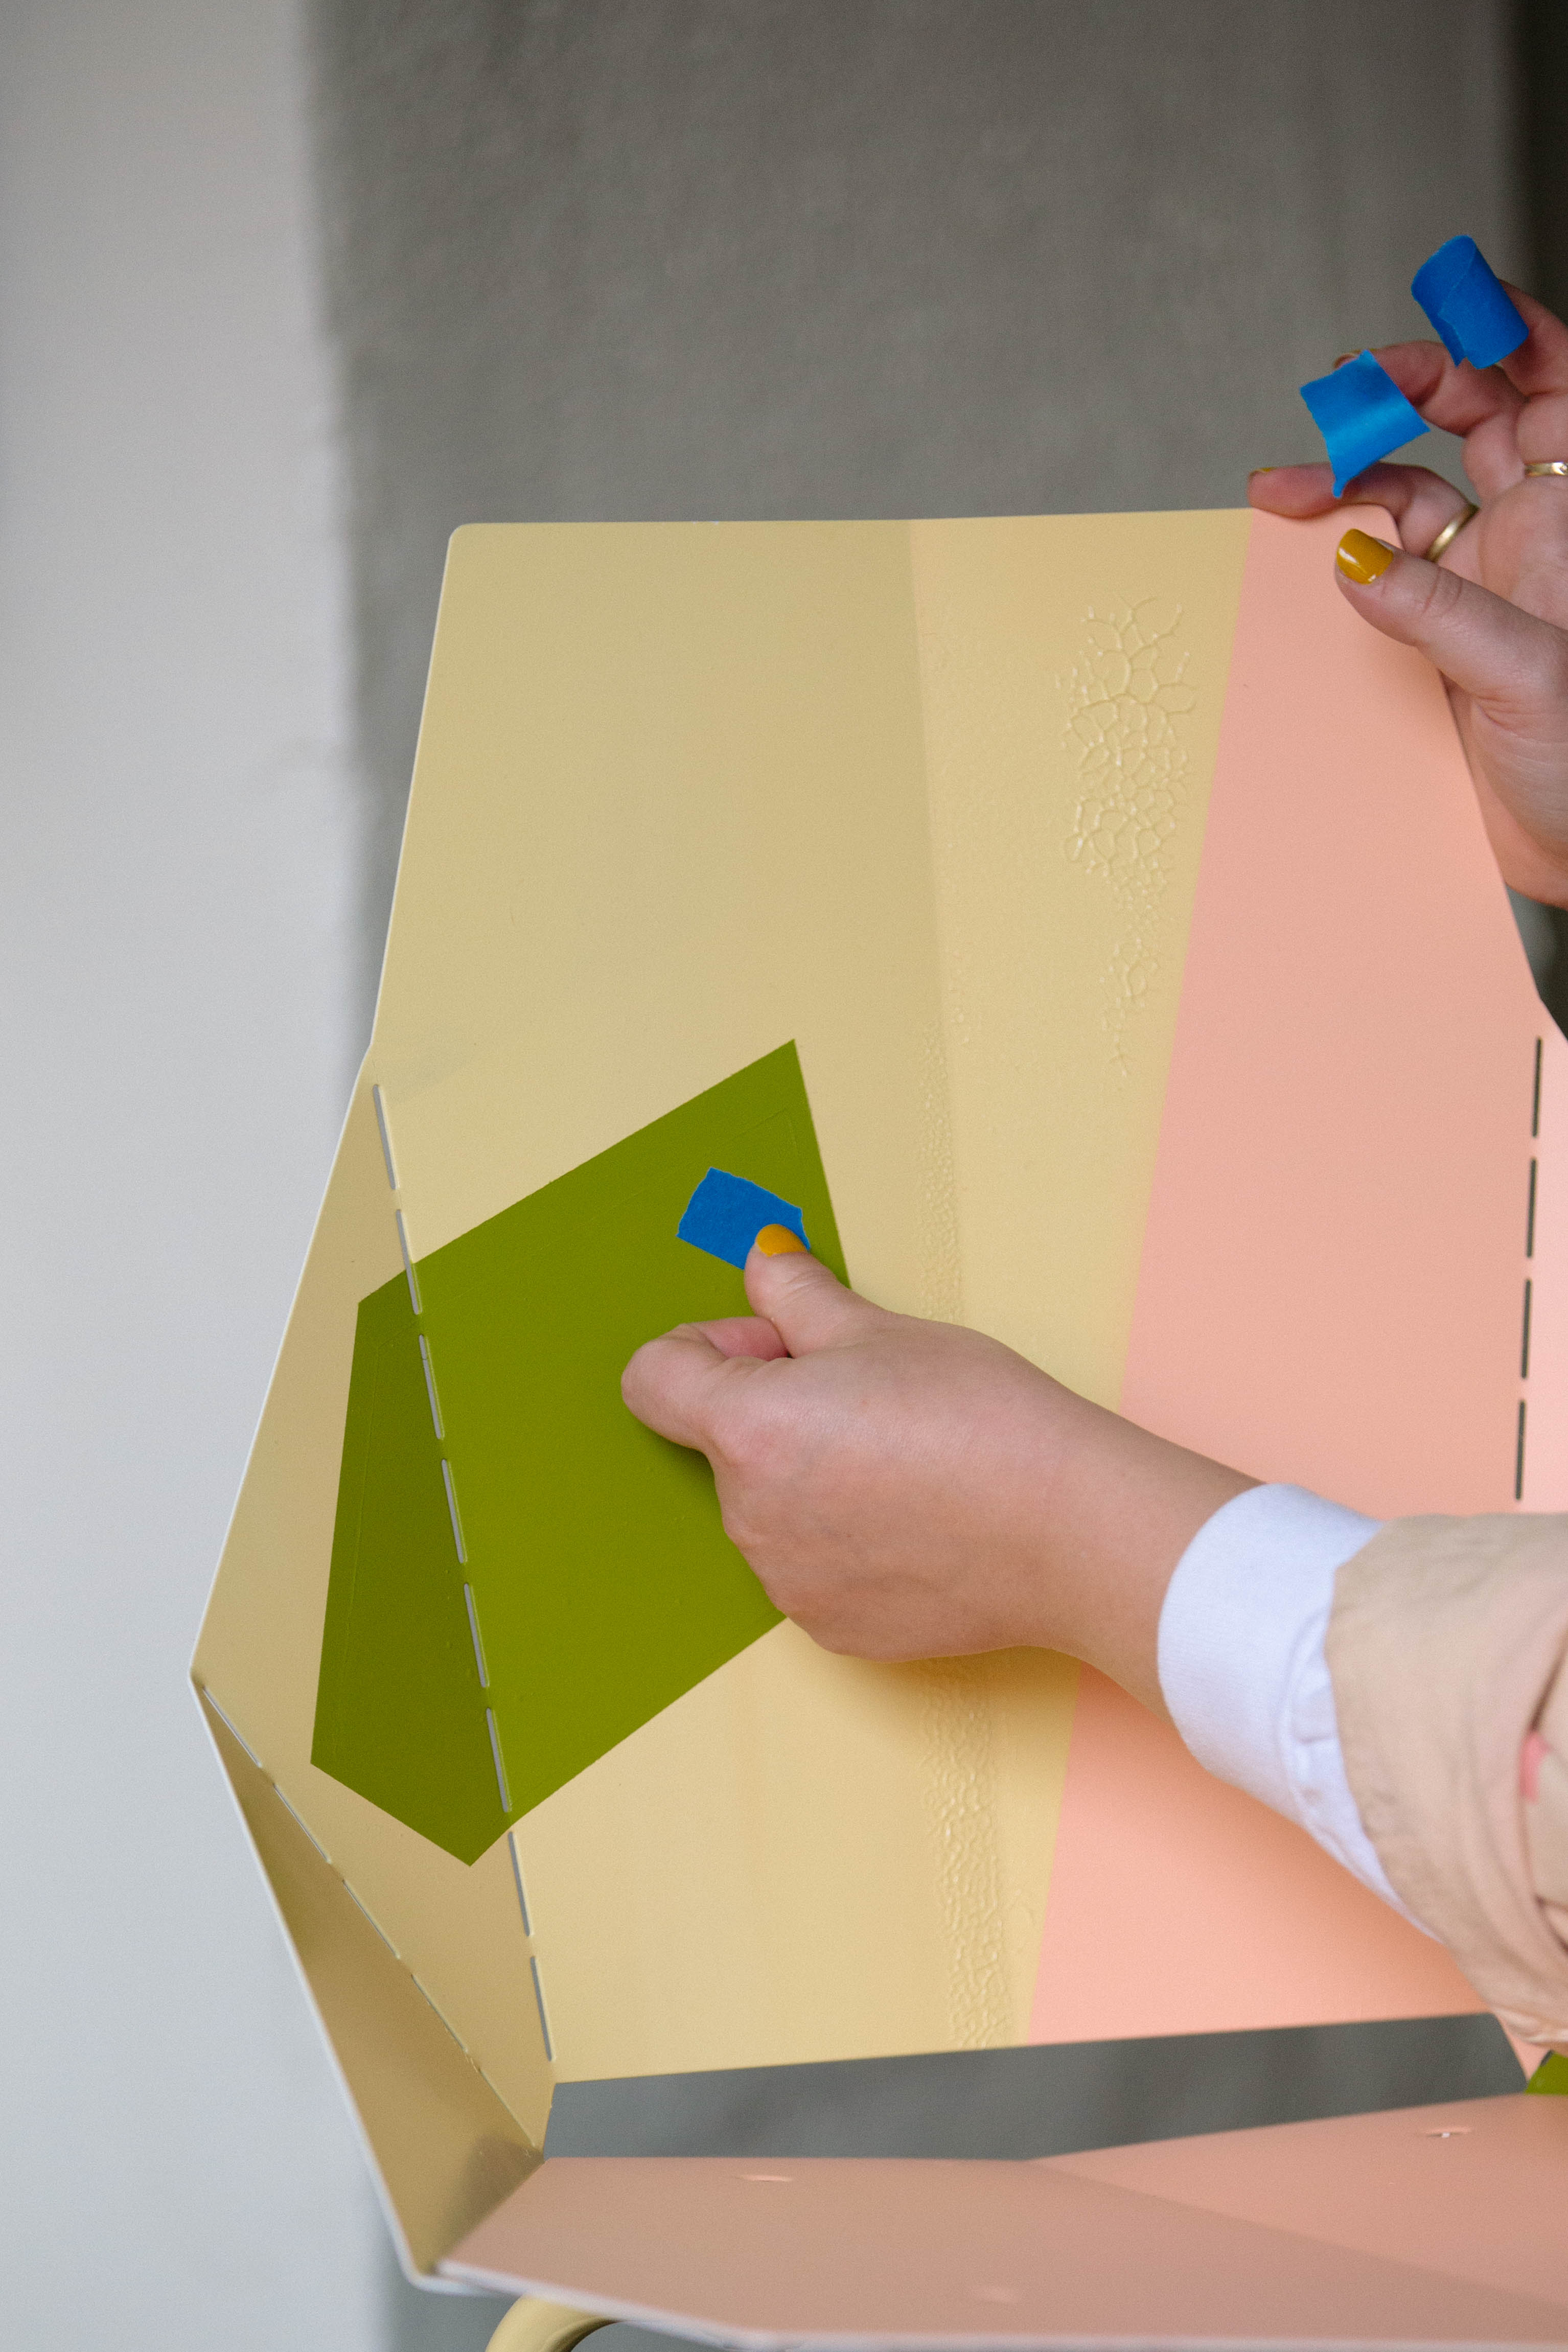 person painting a chair